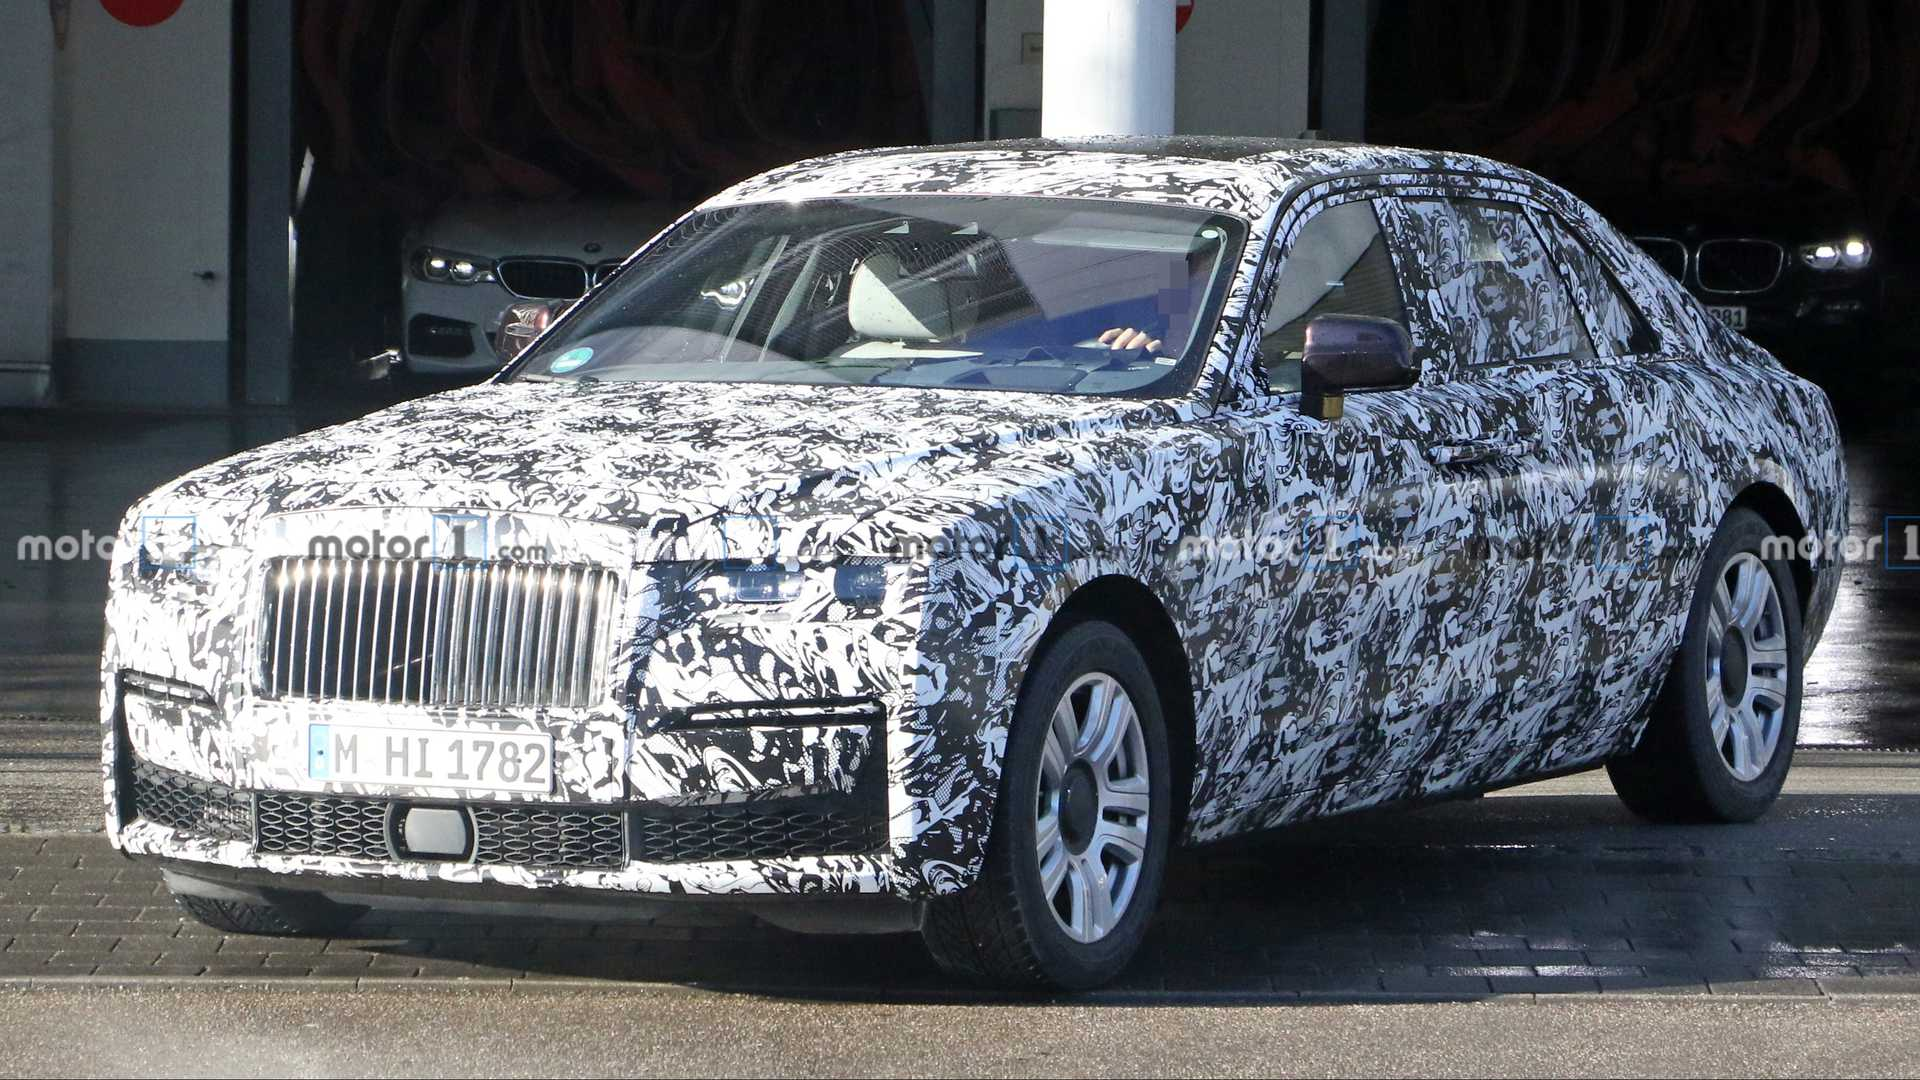 Rolls Royce Ghost Spied Looking Nearly Ready For Production